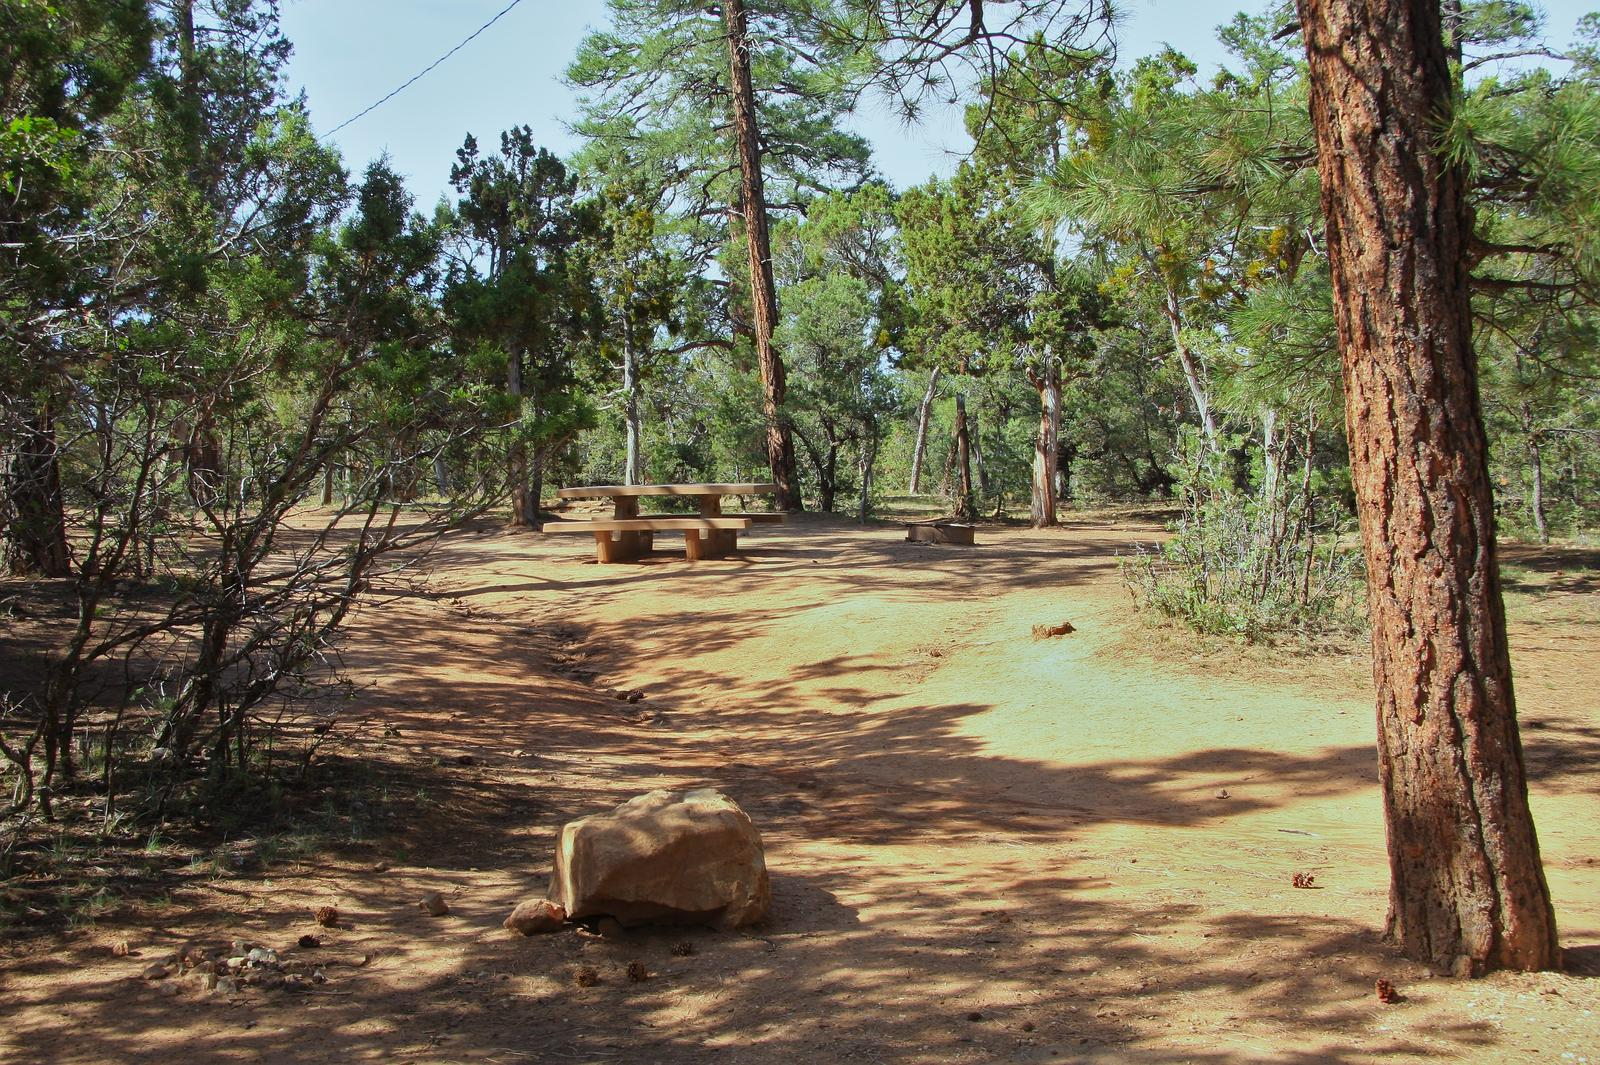 Picnic table and fire pit, Mather CampgroundPicnic table and fire pit for Oak Loop 259, Mather Campground